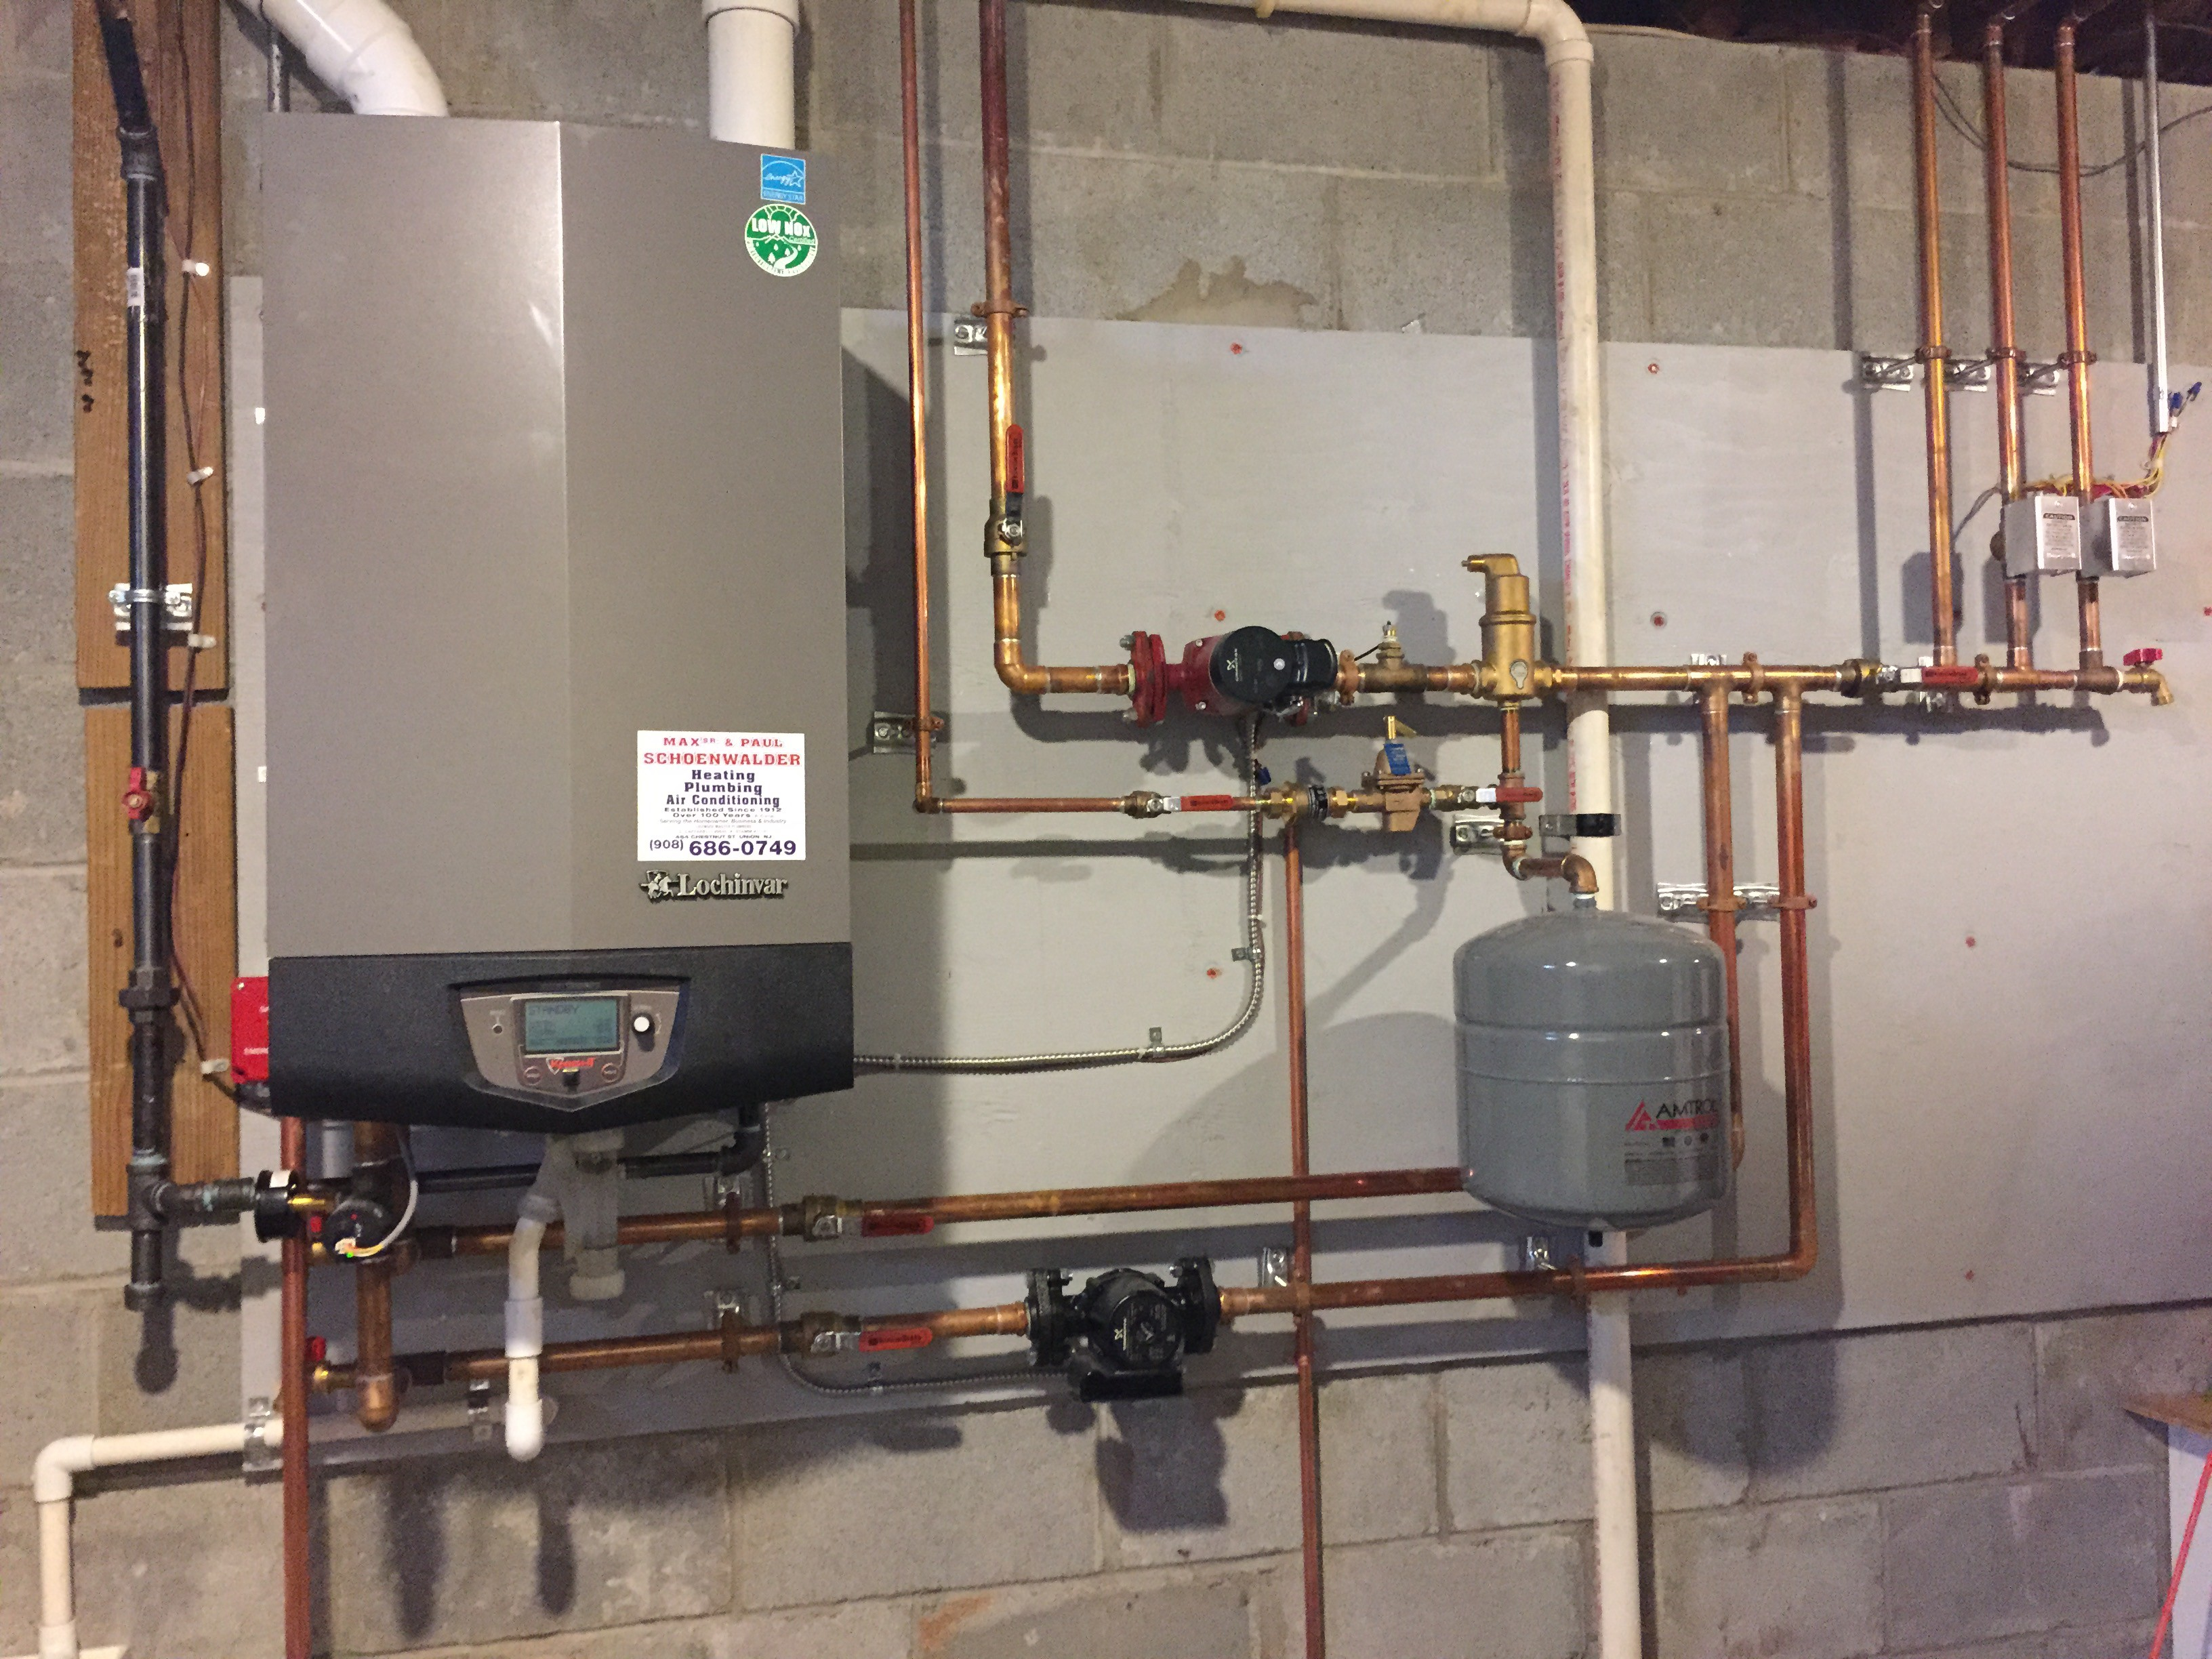 Max Sr. & Paul Schoenwalder will install gas hydronic (hot water ...